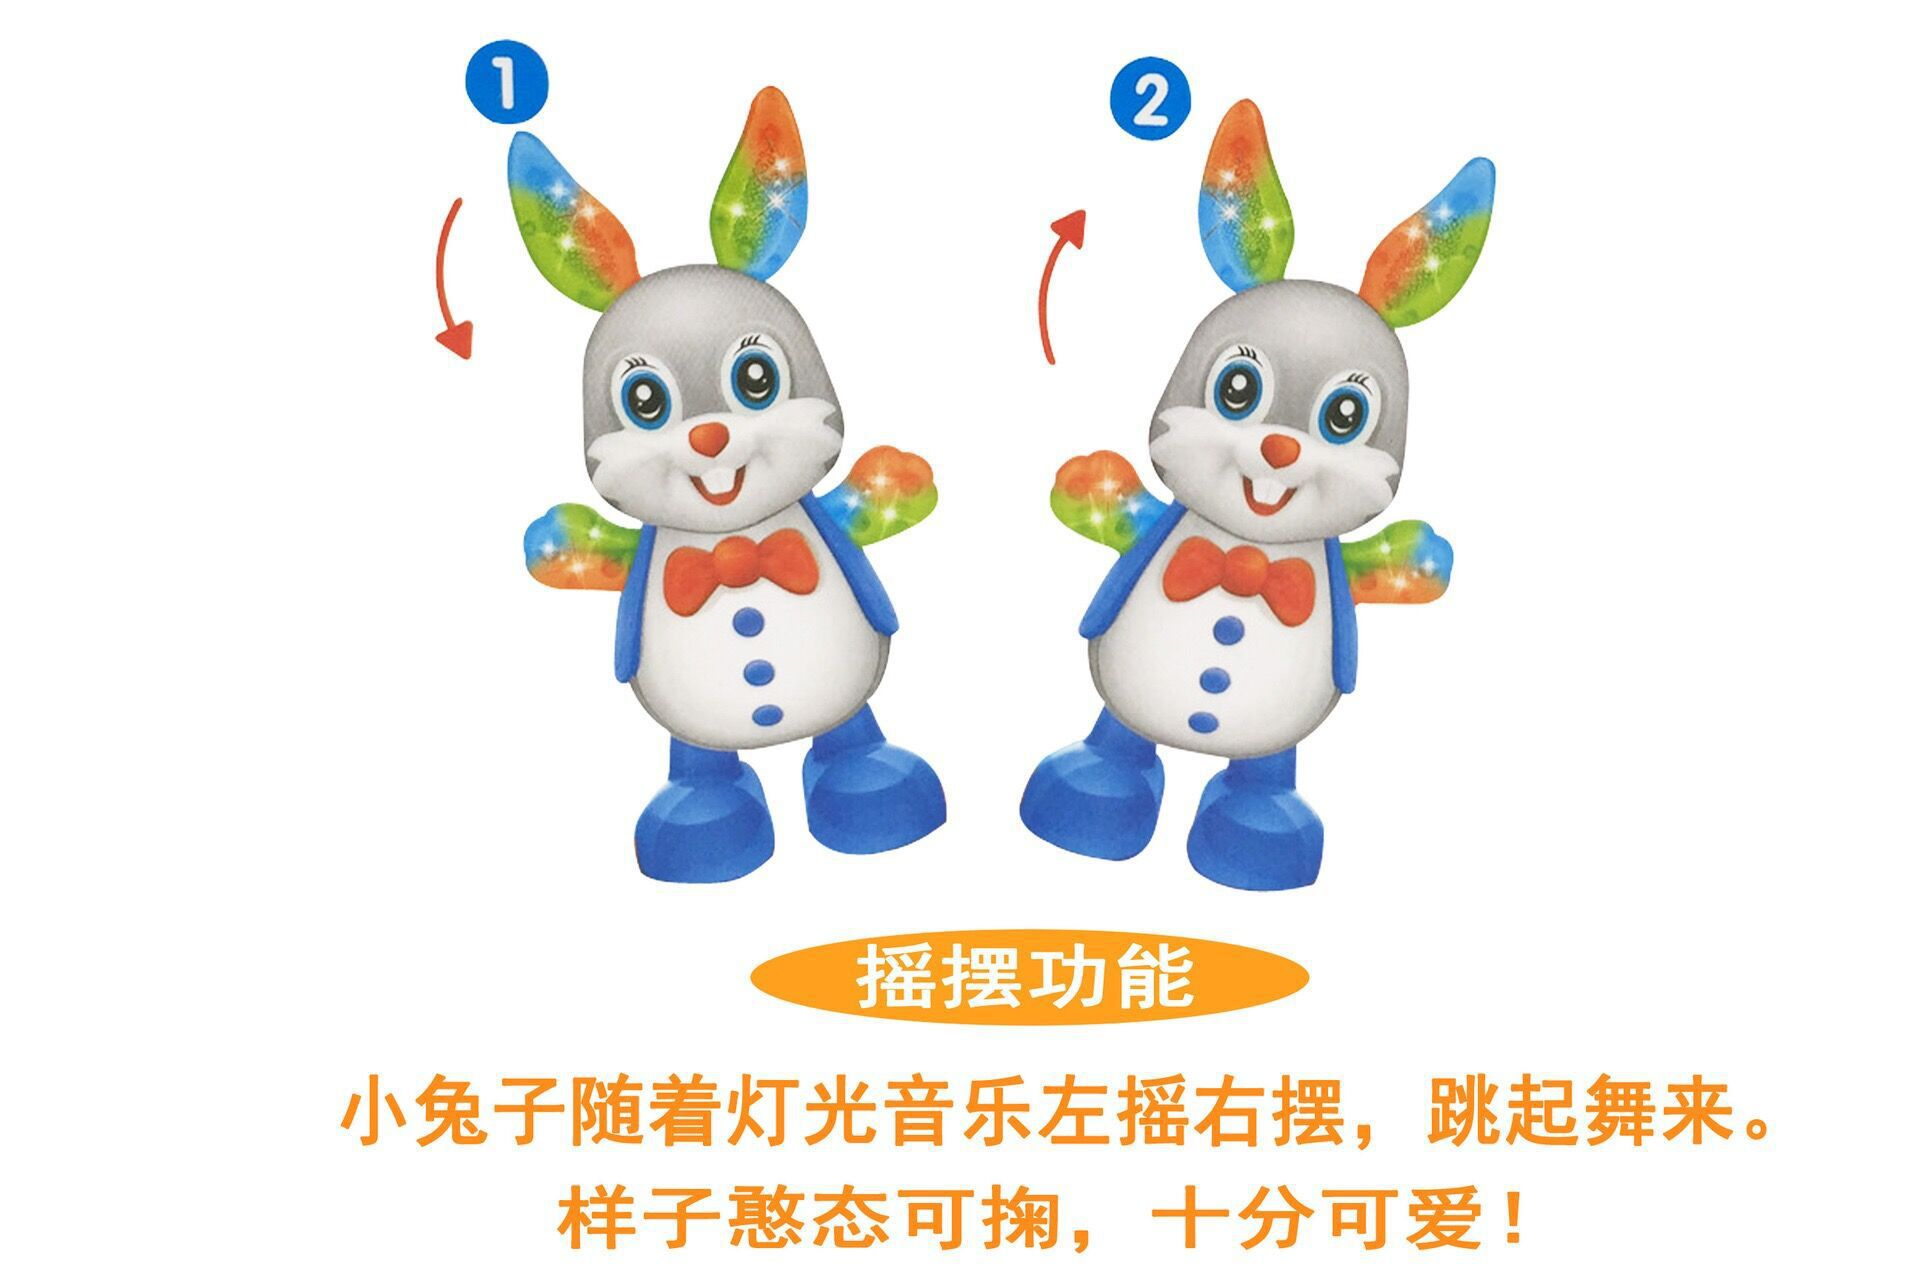 New Style Stall Hot Selling Electric Glowing Toy Singing Dancing Walk Eyes Rotation Sway Bunny